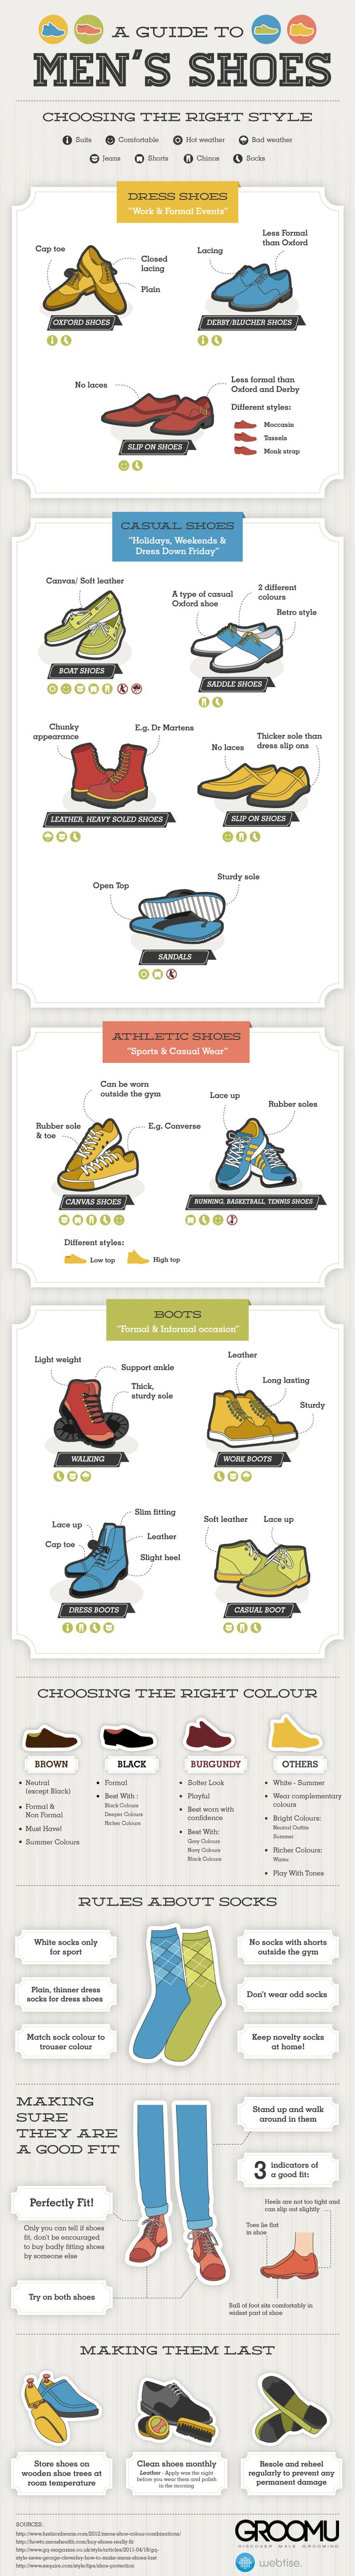 Scarpe, info e abbinamenti / A Guide To Men's Shoes